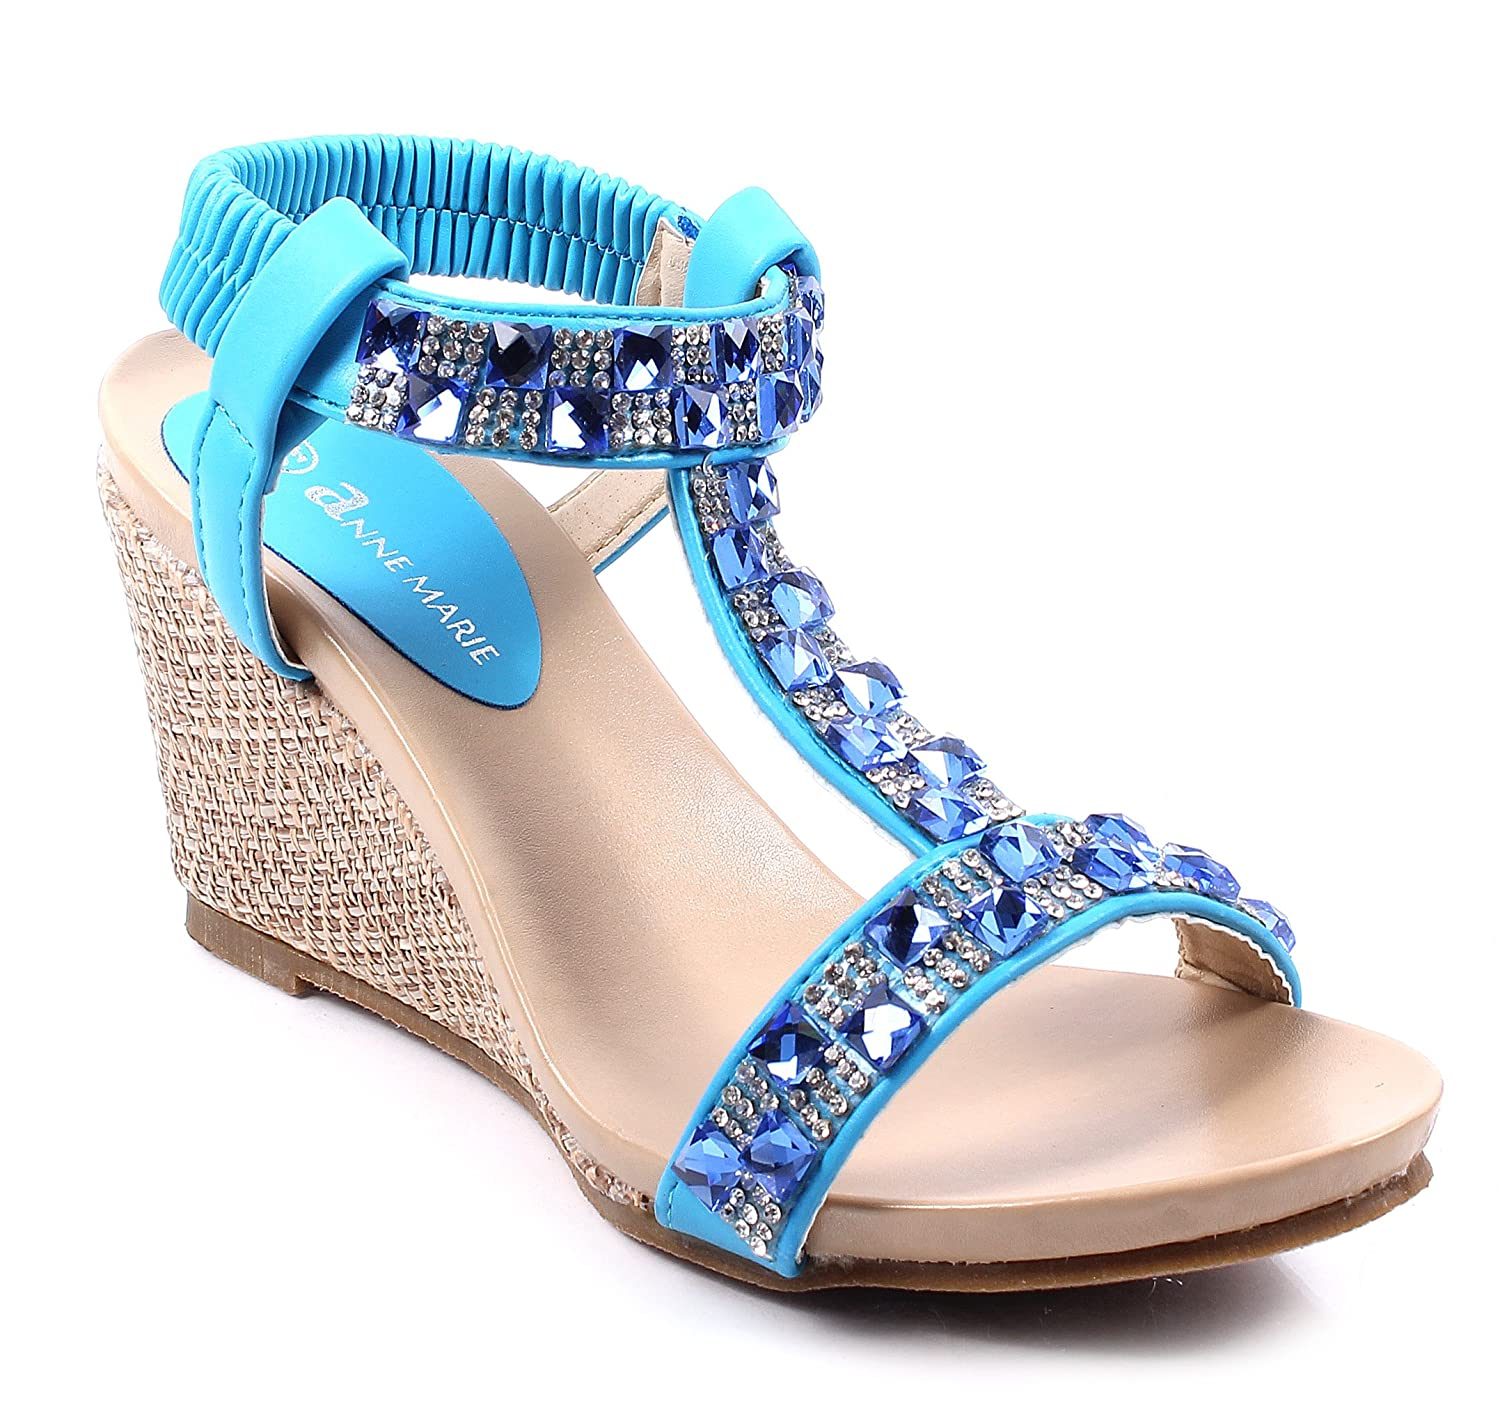 2402e6c729c6 Sexy Rhinestone Slip on Only Ankle Strap Wedges Sandals Pump Platform Womens  High Heels Shoes Without Box Blue Size  6 B (M) US  Amazon.co.uk  Shoes    Bags